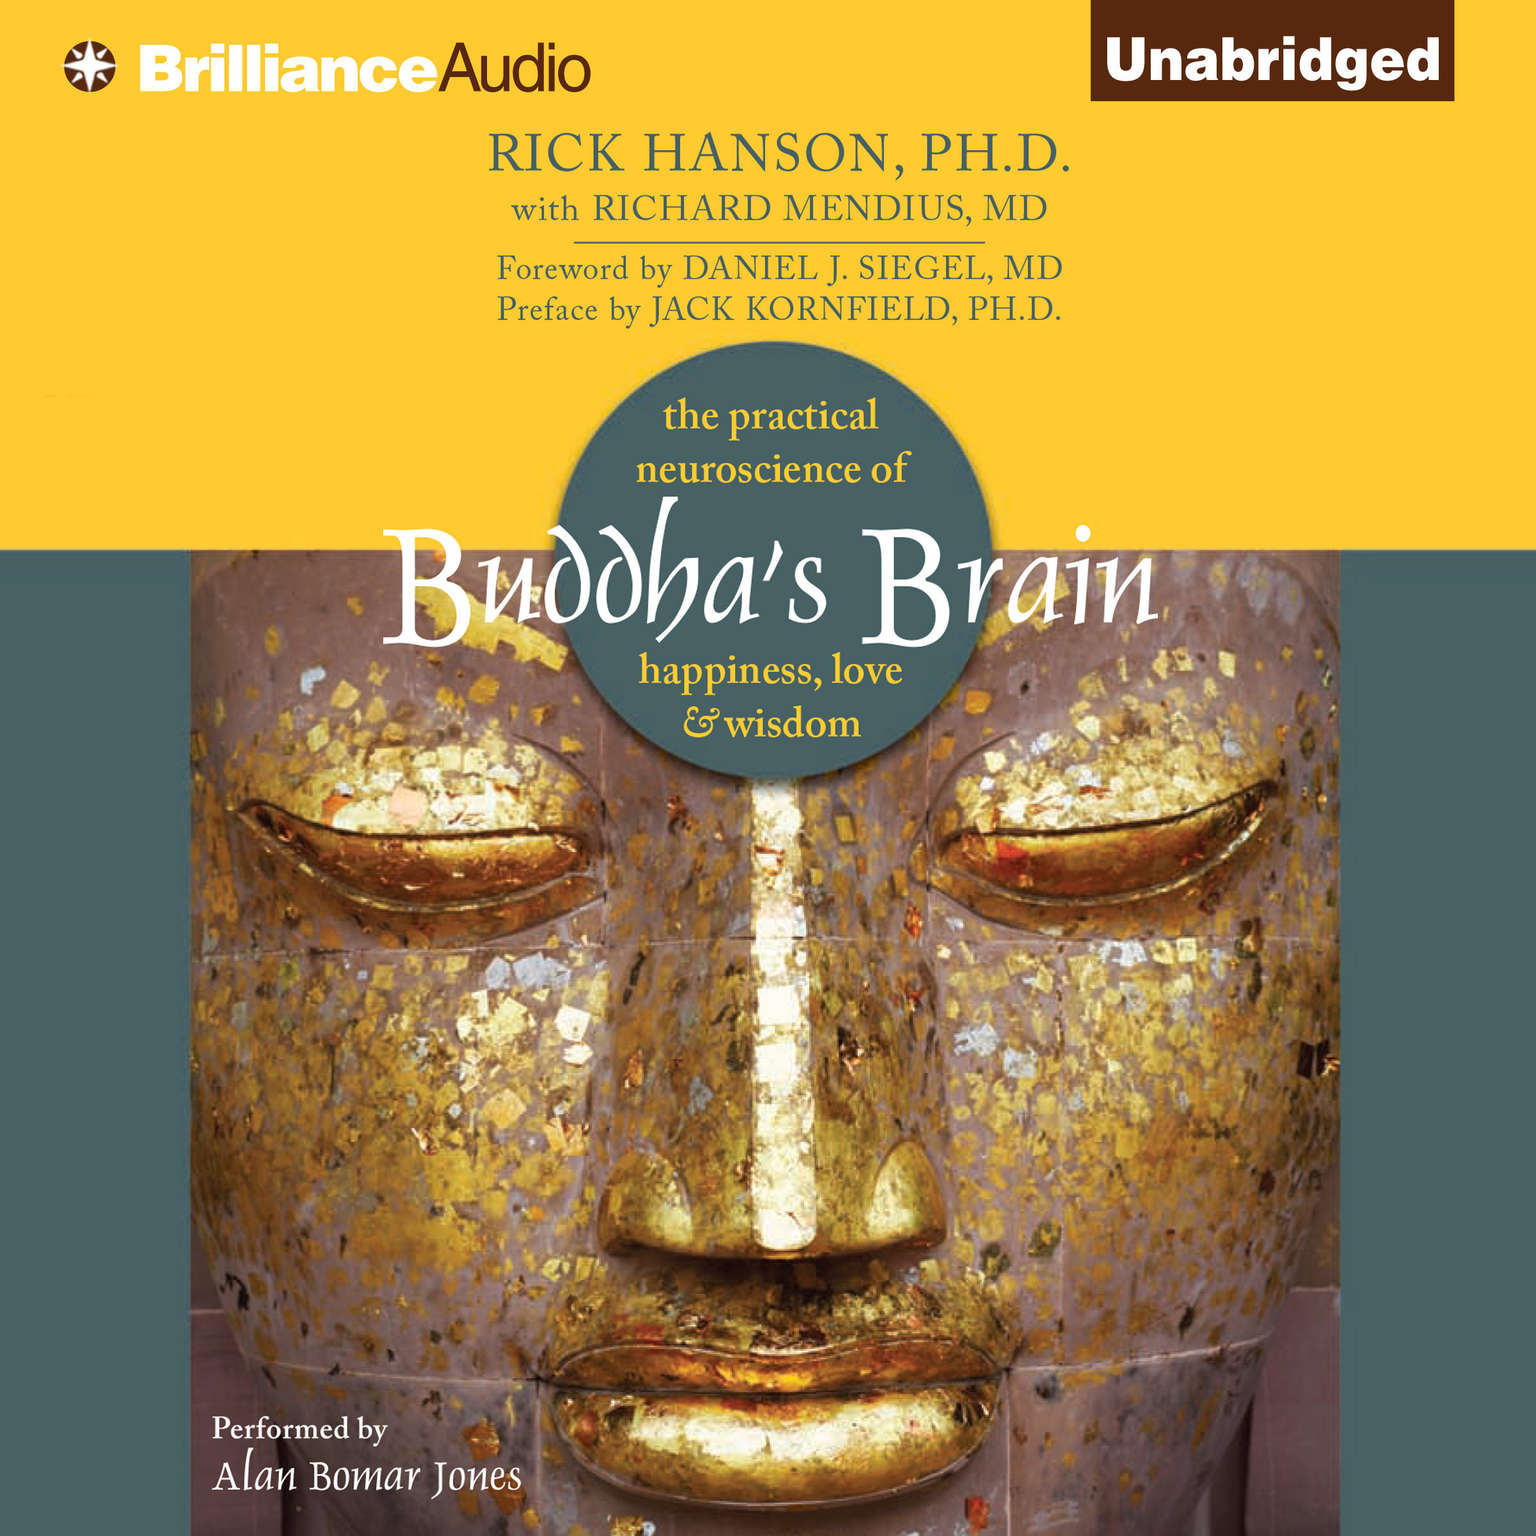 Buddhas Brain: The Practical Neuroscience of Happiness, Love, and Wisdom Audiobook, by Rick Hanson